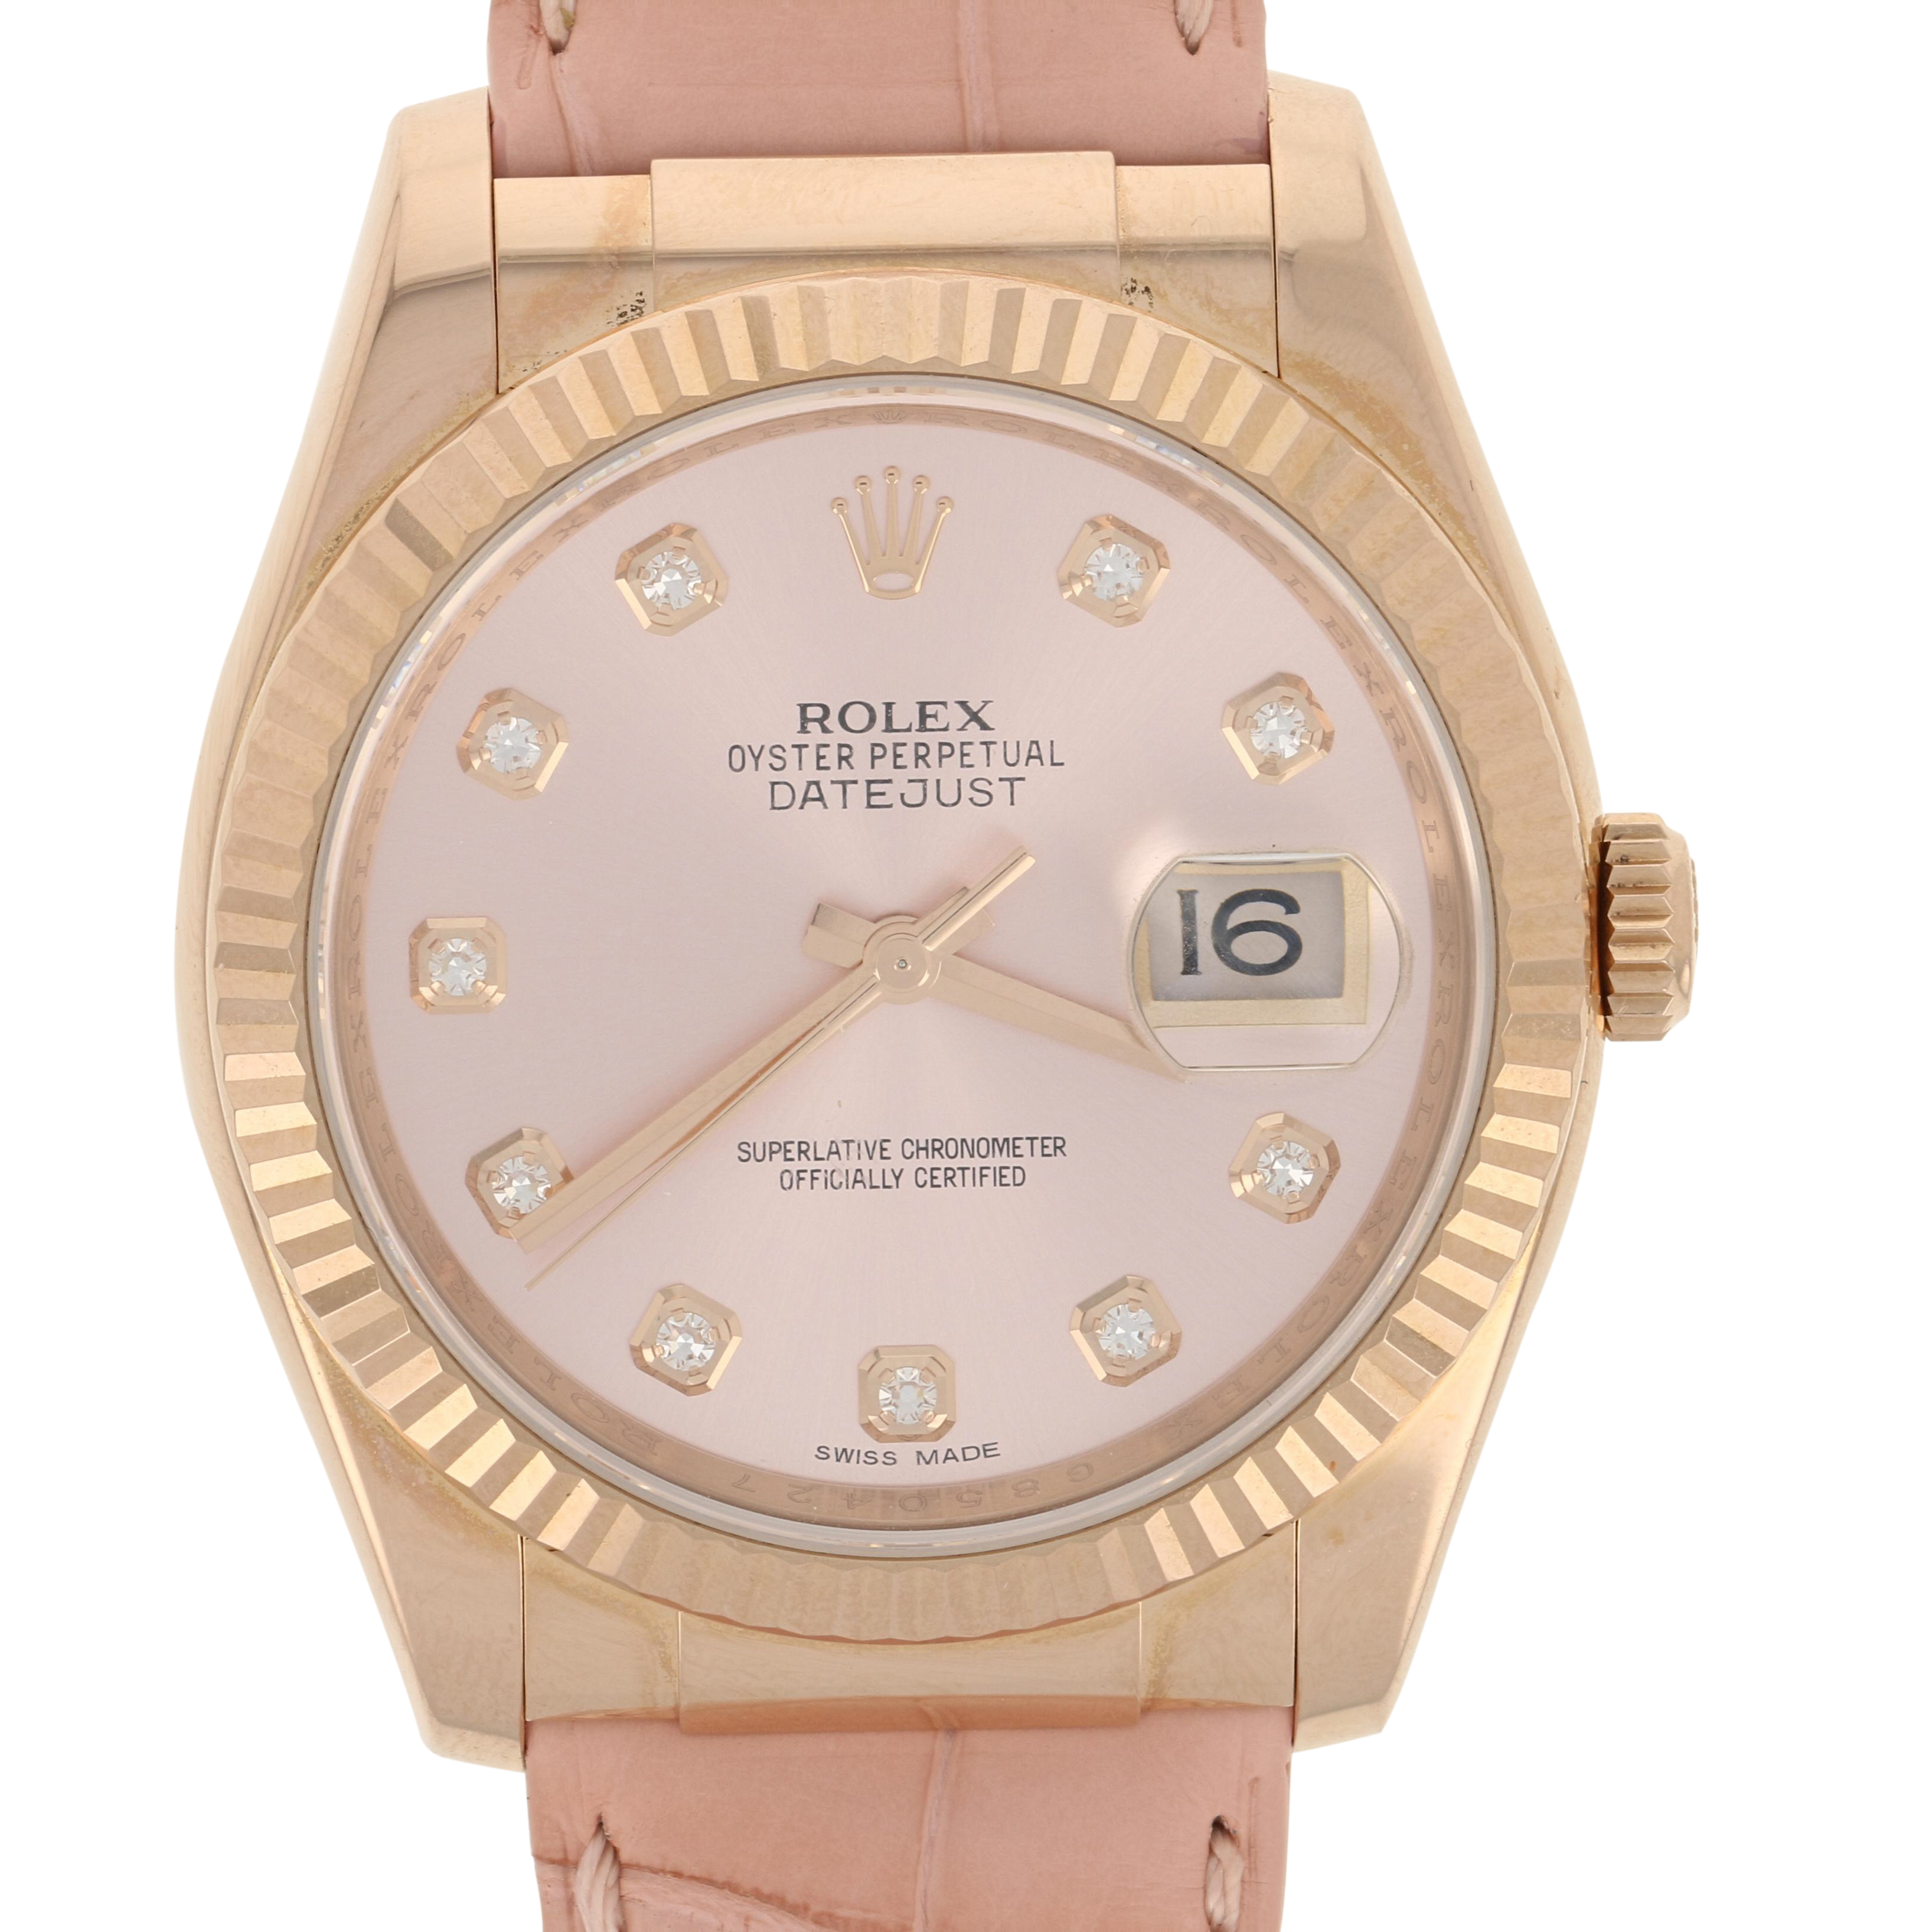 Rolex Oyster Perpetual Rose Gold Details About Rolex 116135 Oyster Datejust Factory Dial Strap 18k Rose Gold Papers Warranty